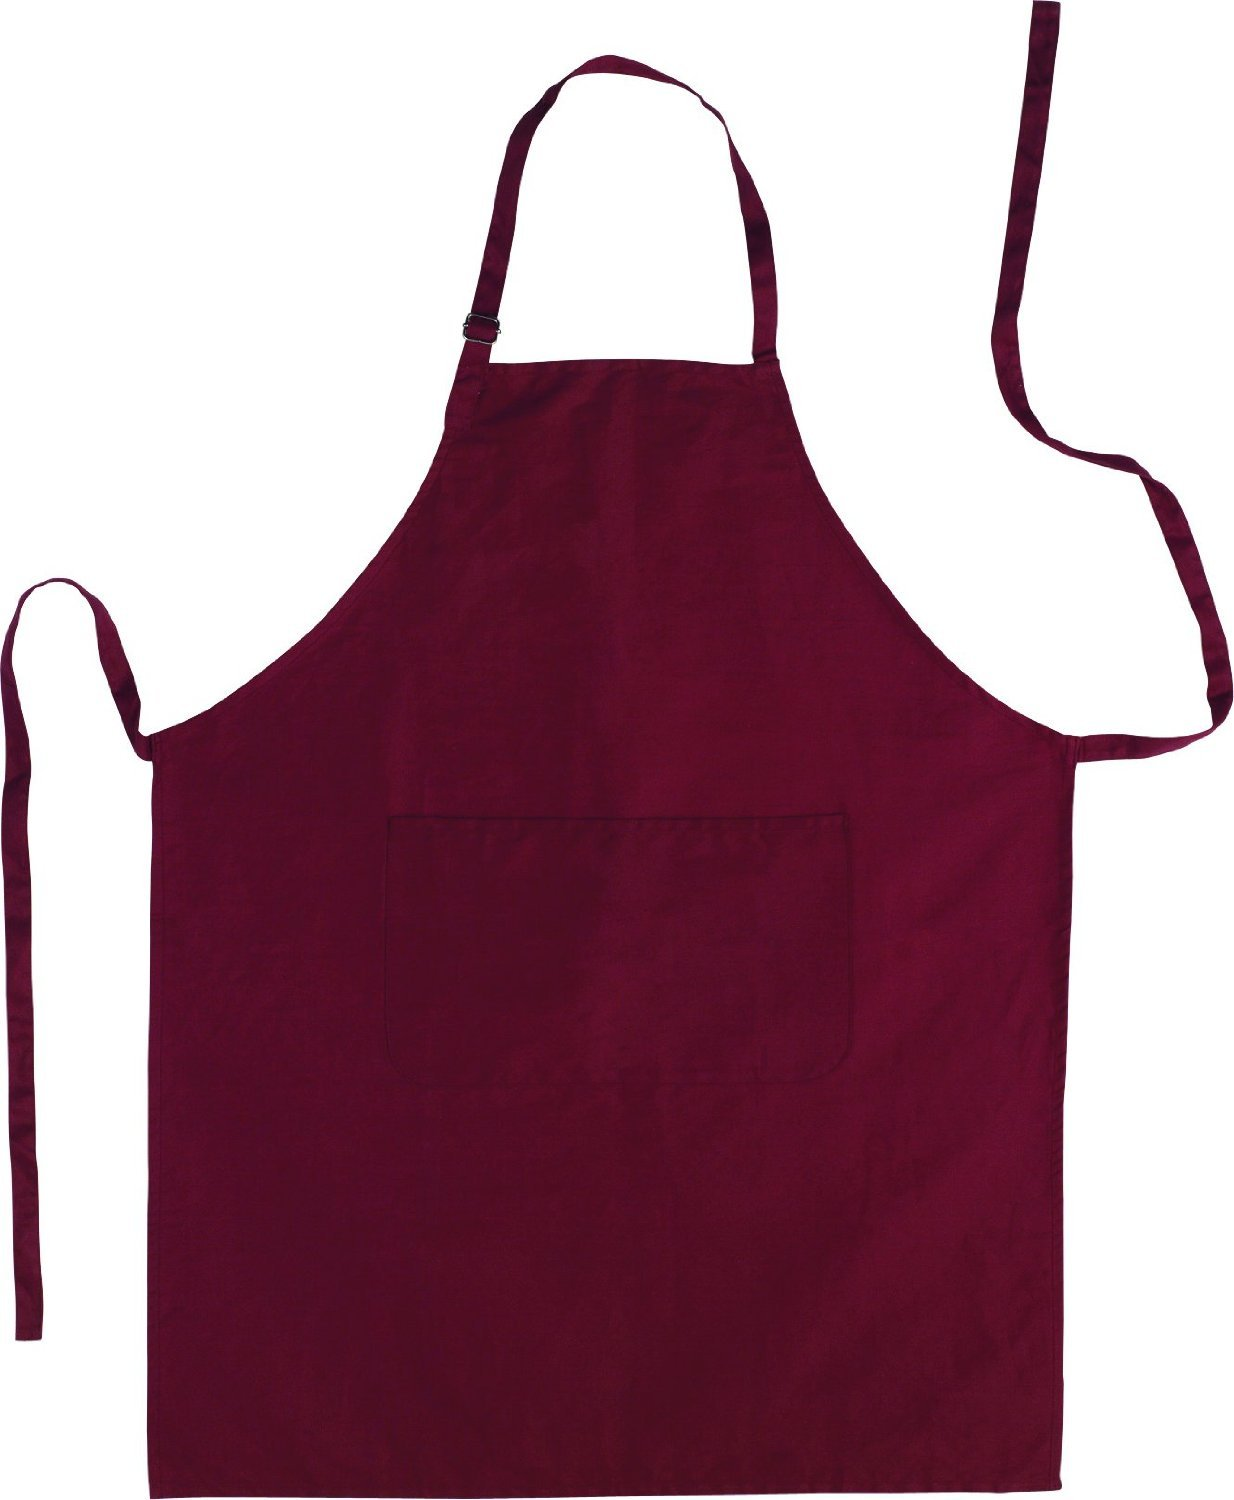 Küchenschürze barbecue apron made of cotton in burgundy colour Grillschürze Others